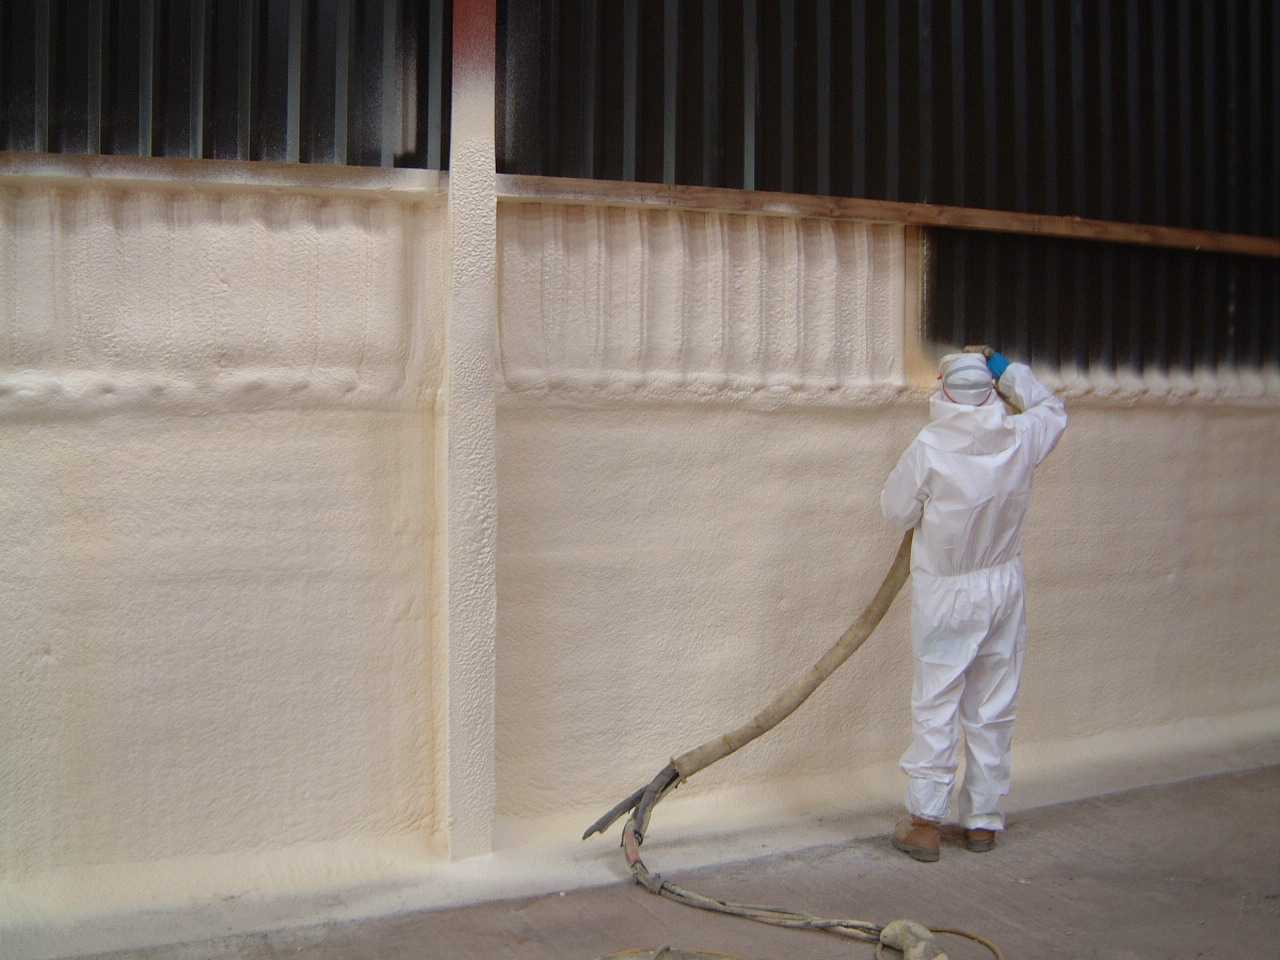 Spray Foam Insulation For Walls Ceilings Amp Floors Isothane